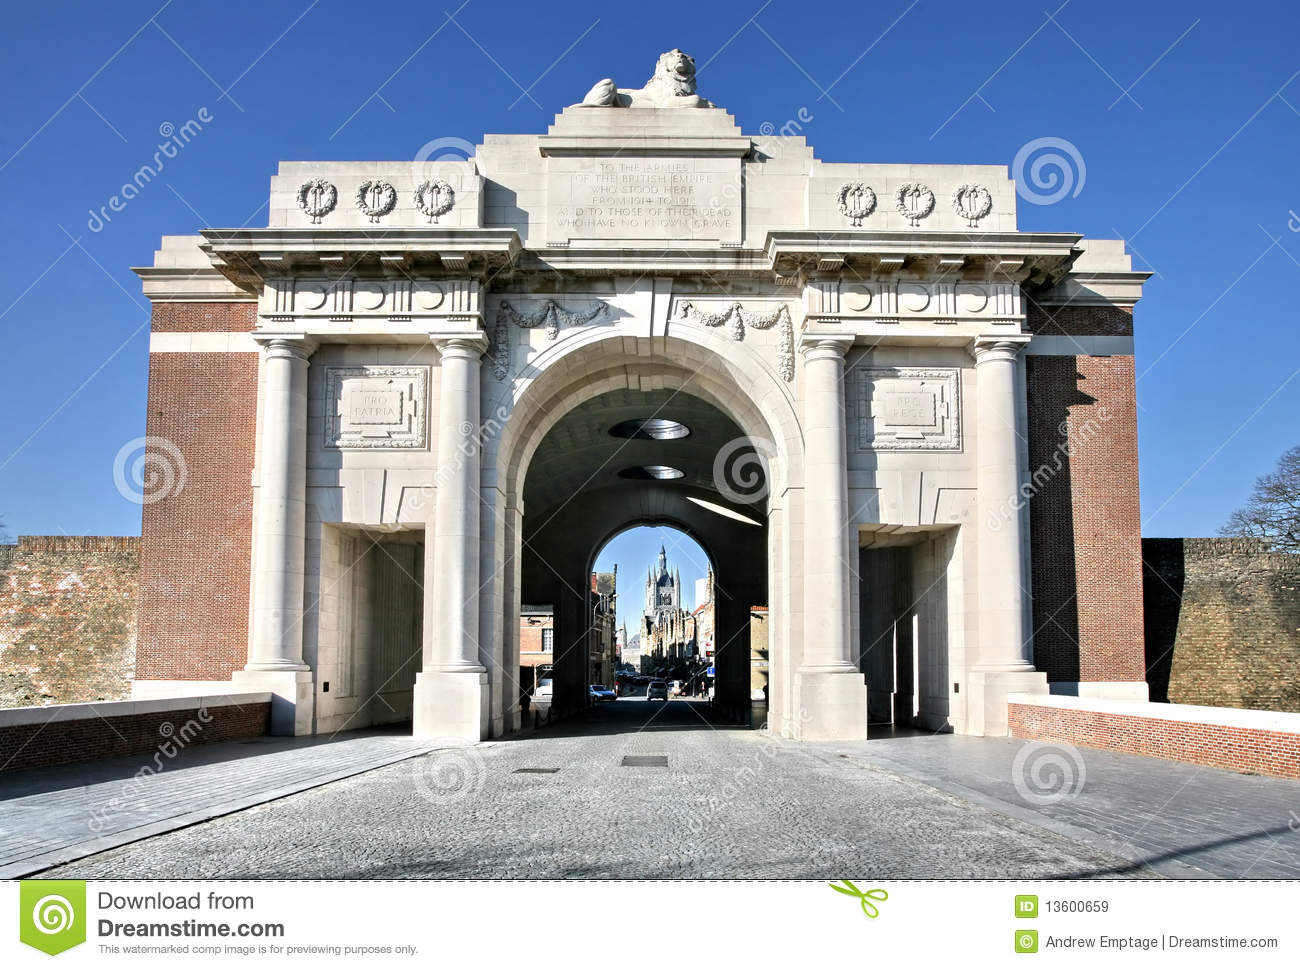 The first world war memorial at Ypres dedicated to those British ...